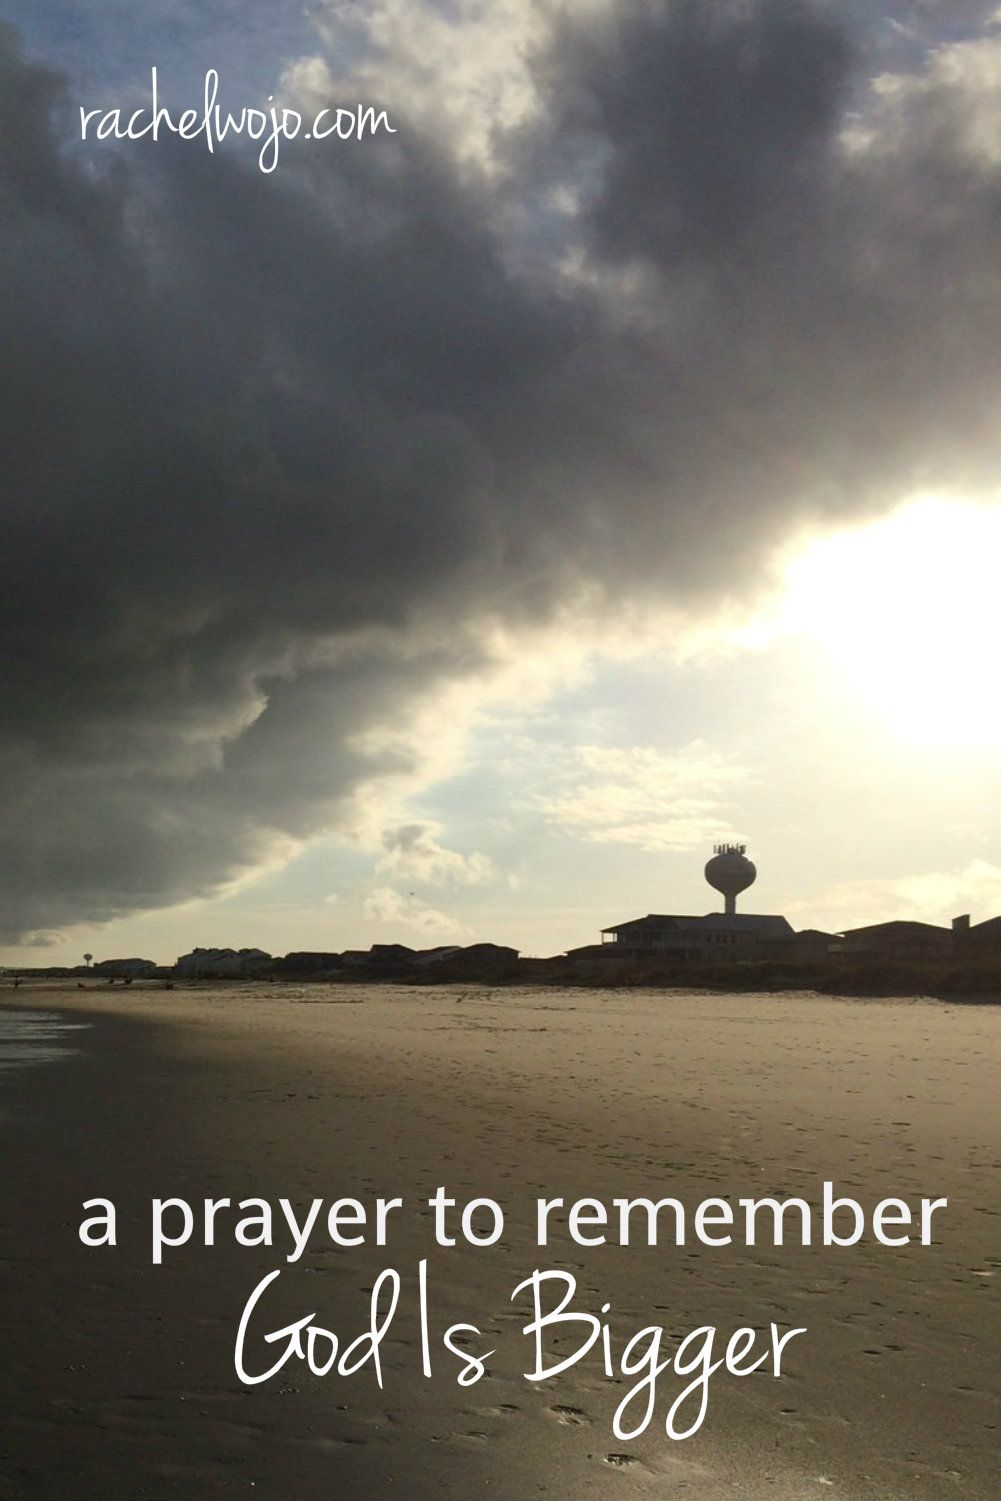 A Prayer to Remember God Is Bigger (With images) Pray